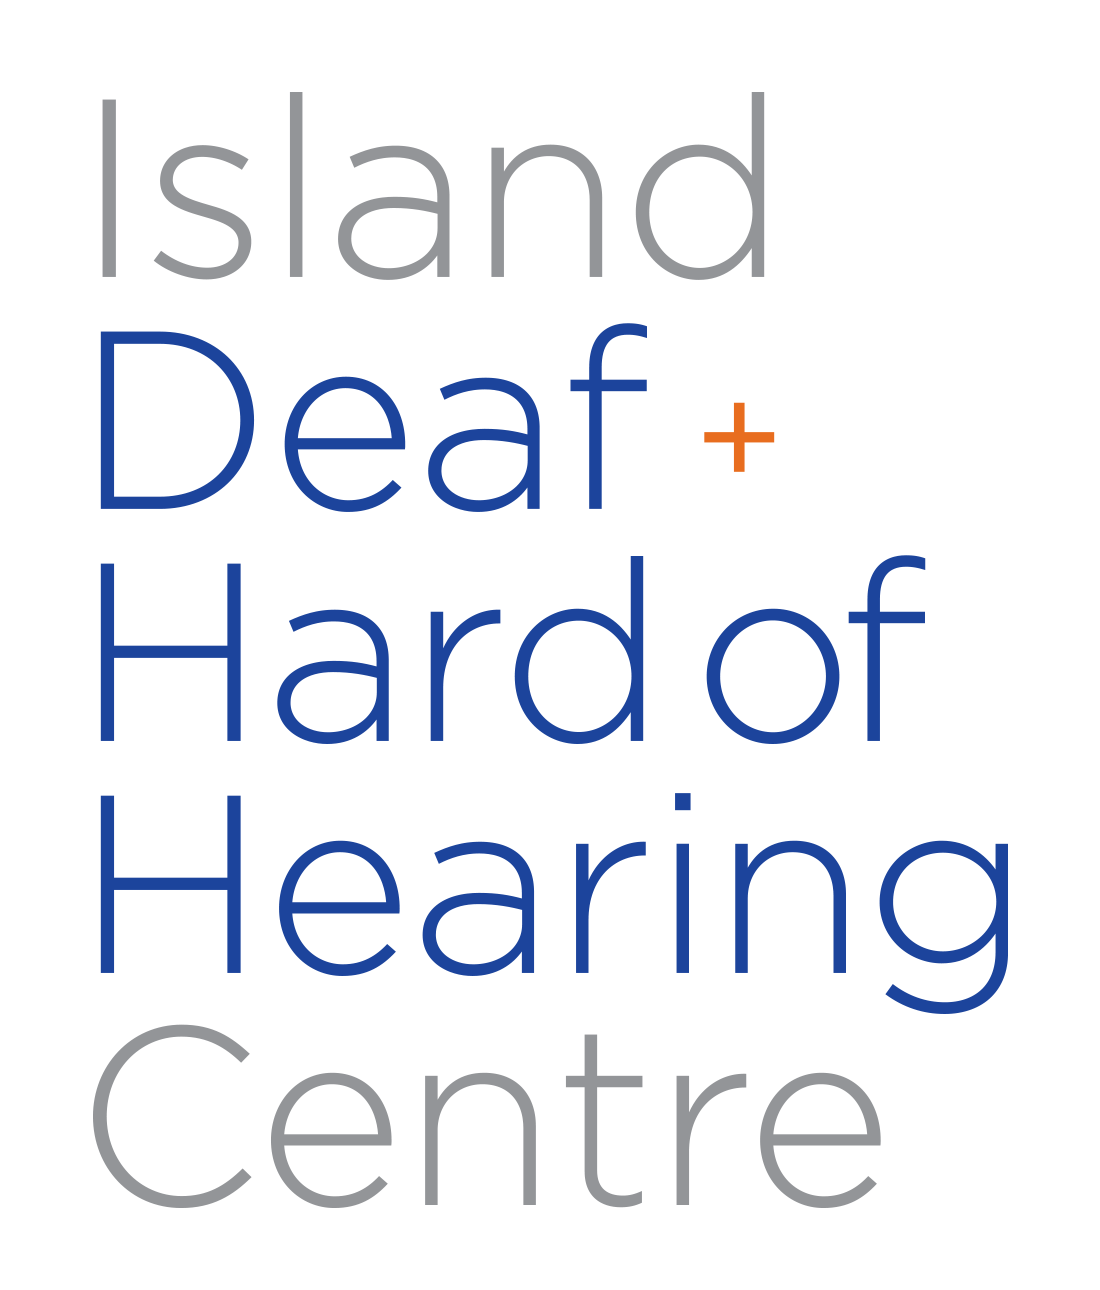 Island Deaf & Hard of Hearing Centre